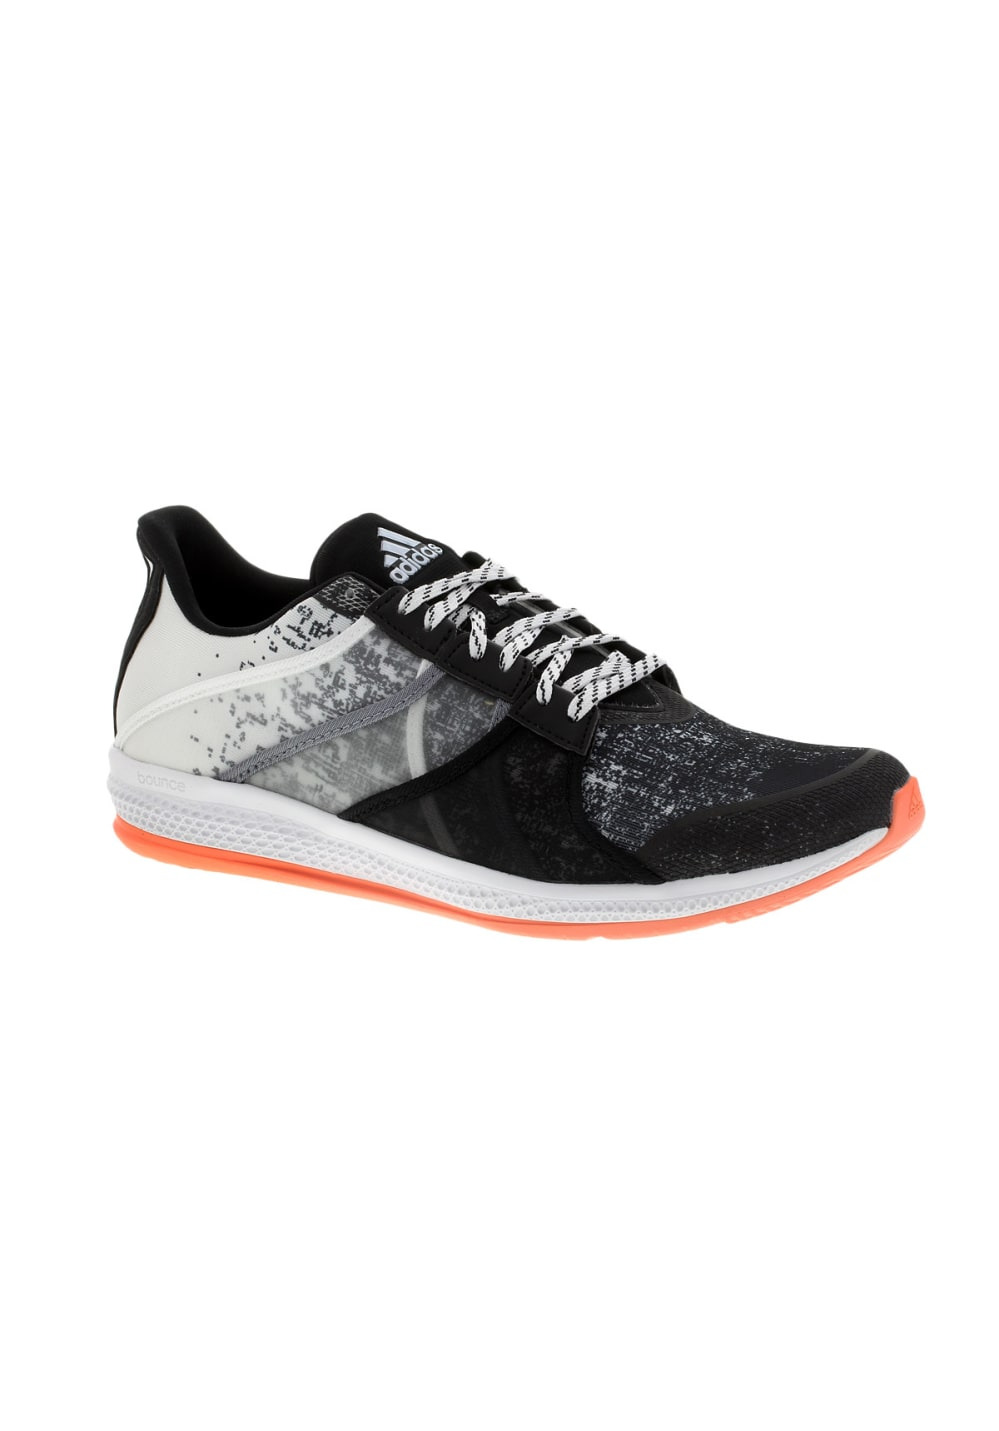 wholesale dealer 81350 83eb3 adidas Gymbreaker Bounce - Fitness shoes for Women - Black | 21RUN